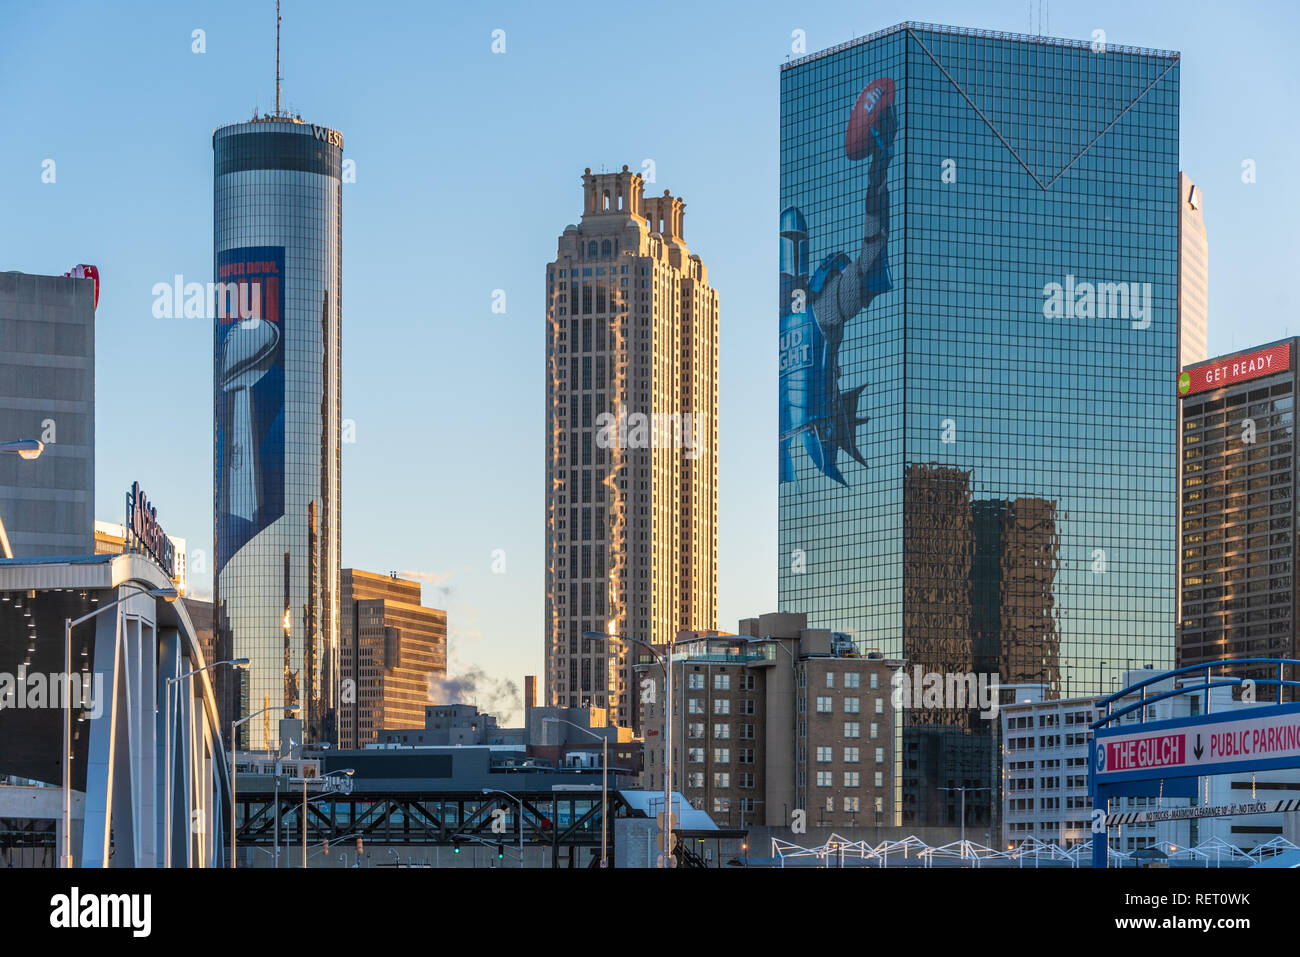 Downtown Atlanta, Georgia, with Super Bowl LIII  mega-graphics on the city's iconic high rise glass towers. (USA) - Stock Image